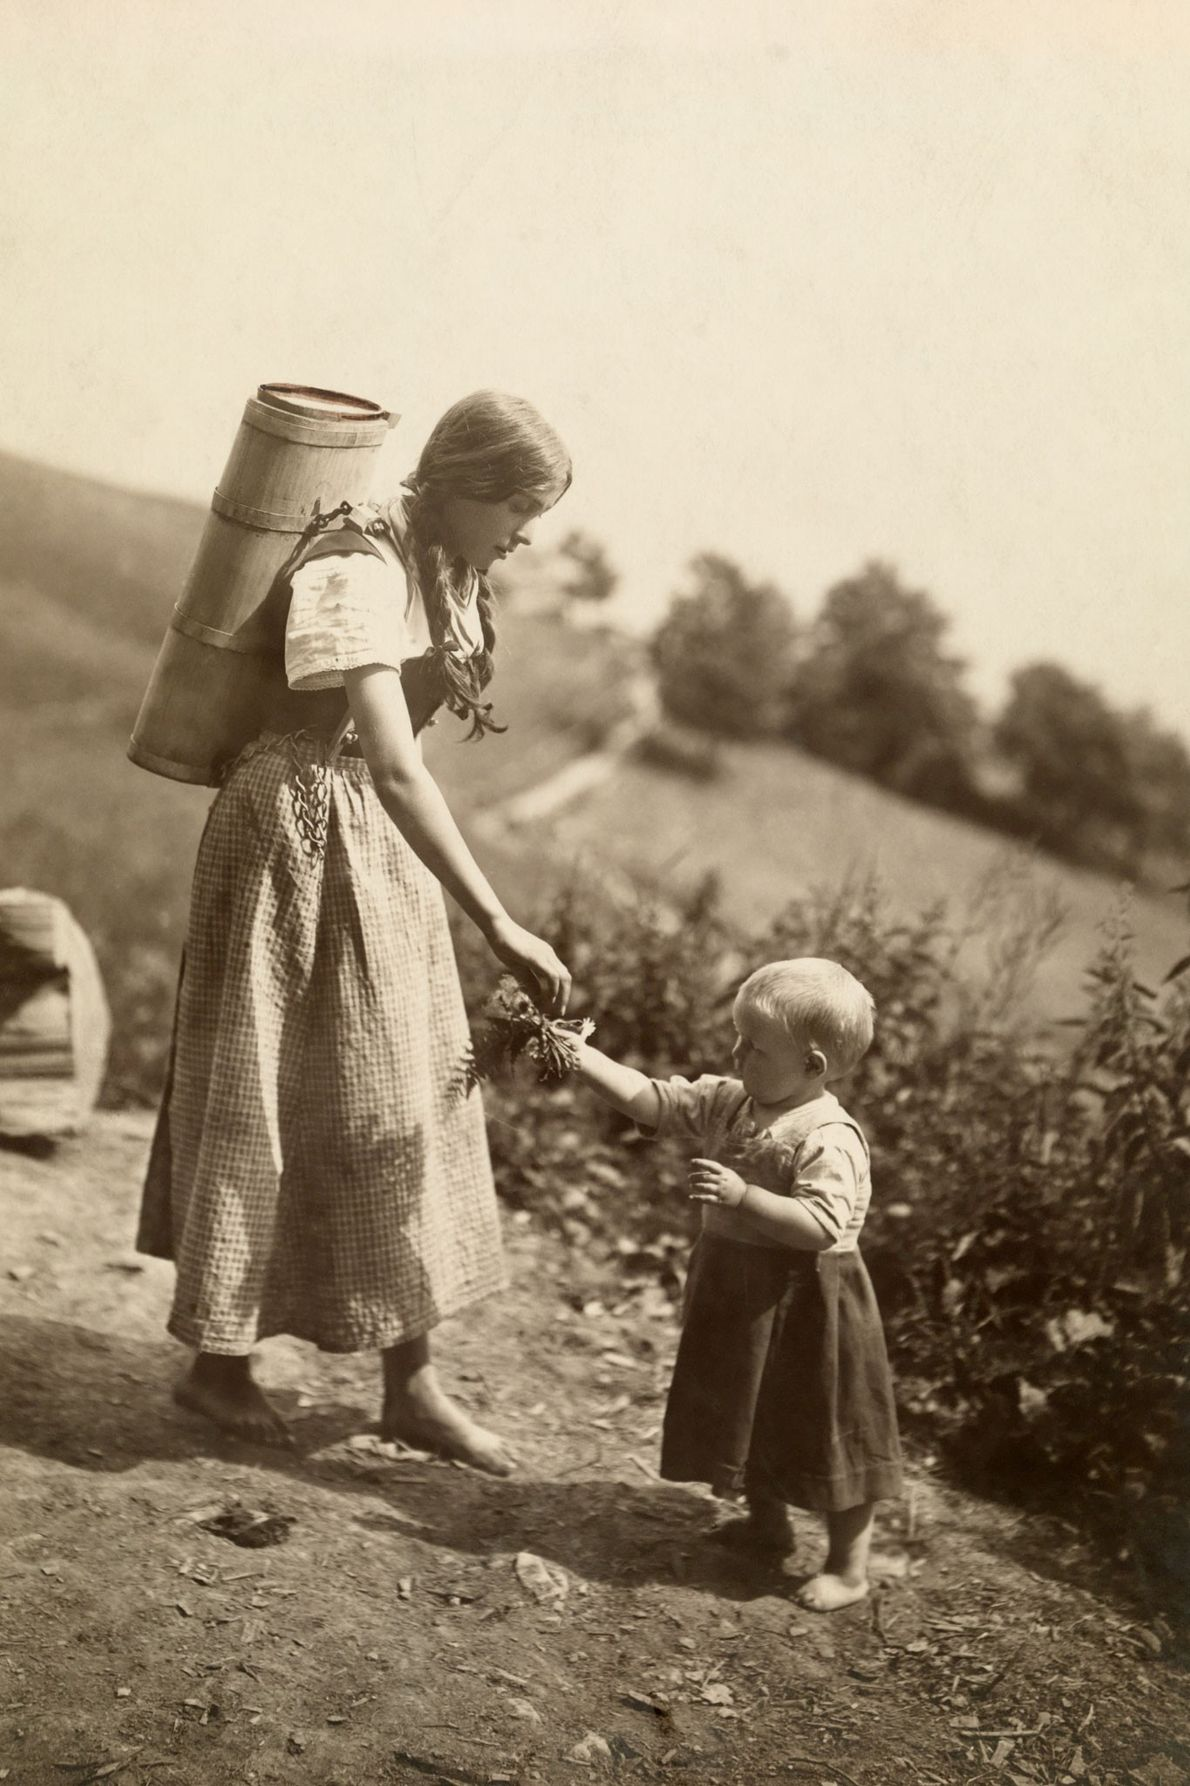 A Swiss mother reaches for her daughter's hand, which is full of flowers.